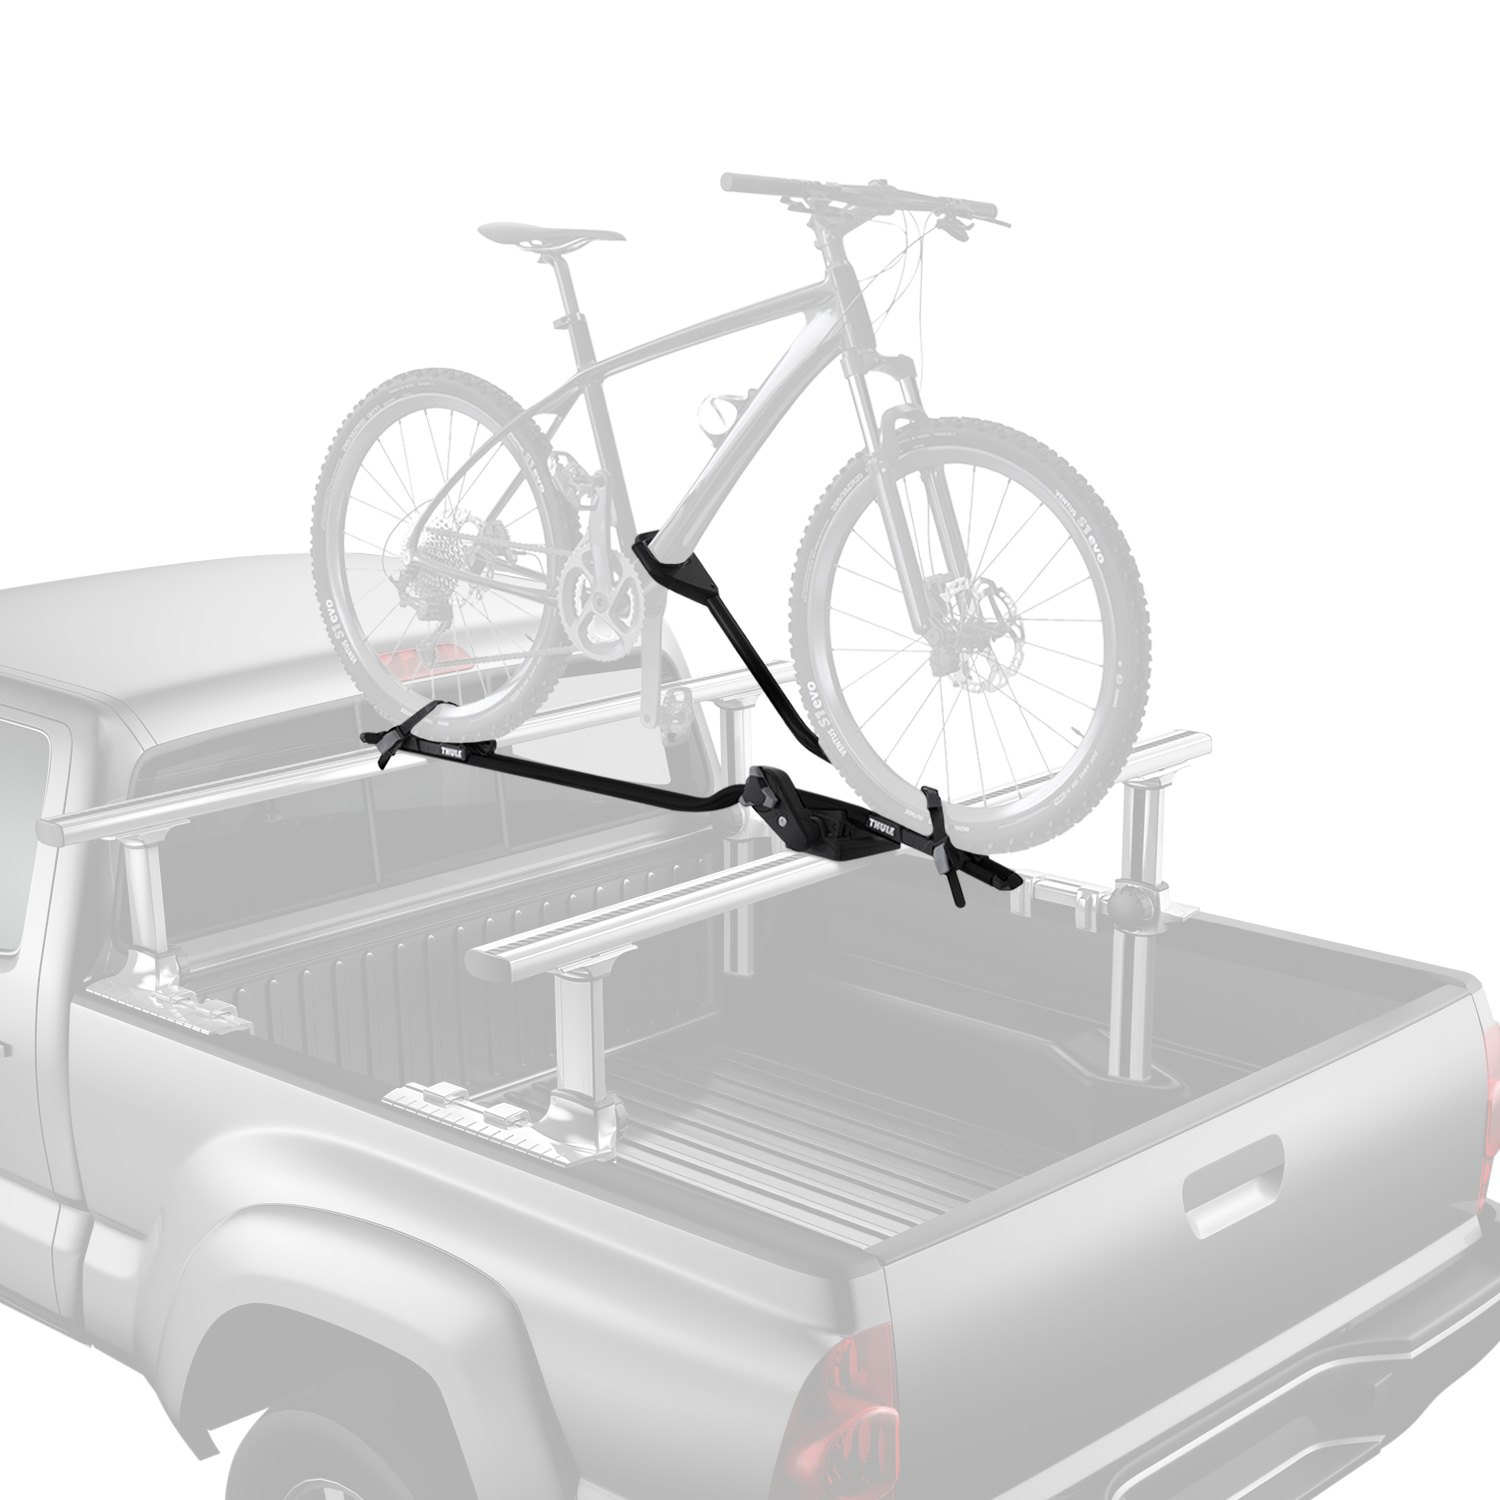 sale for bike all calgary design carrier hitch rack thule reviews pro roof